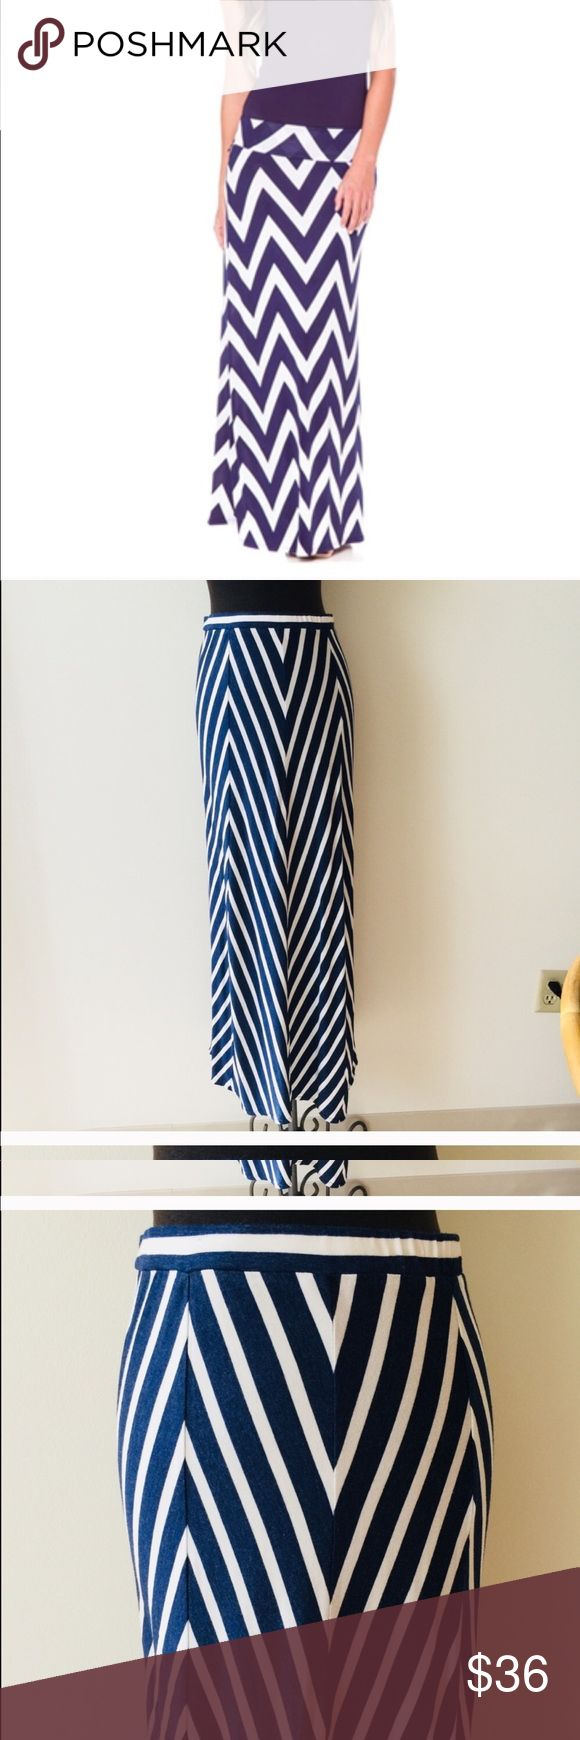 ❗️Nordstrom Max Studio Chevron Maxi Skirt MSRP $98 ❗️Nordstrom Max Studio Chevron Maxi Skirt. Size small. Retails $98 in great condition. Cover photo for styling, pattern slightly different. Make an offer! I consider all good offers. Discounts on bundles!   Support a small business working hard to style you:  ❤️Poshmark ambassador ❤️Poshmark former #1 Chicago seller 2015 ❤️Poshmark #1 New England seller 2017  ❤️Served over 4,000 women  ❤️Poshed over 8,000 items ❤️4.8 star rating ❤️Fast…